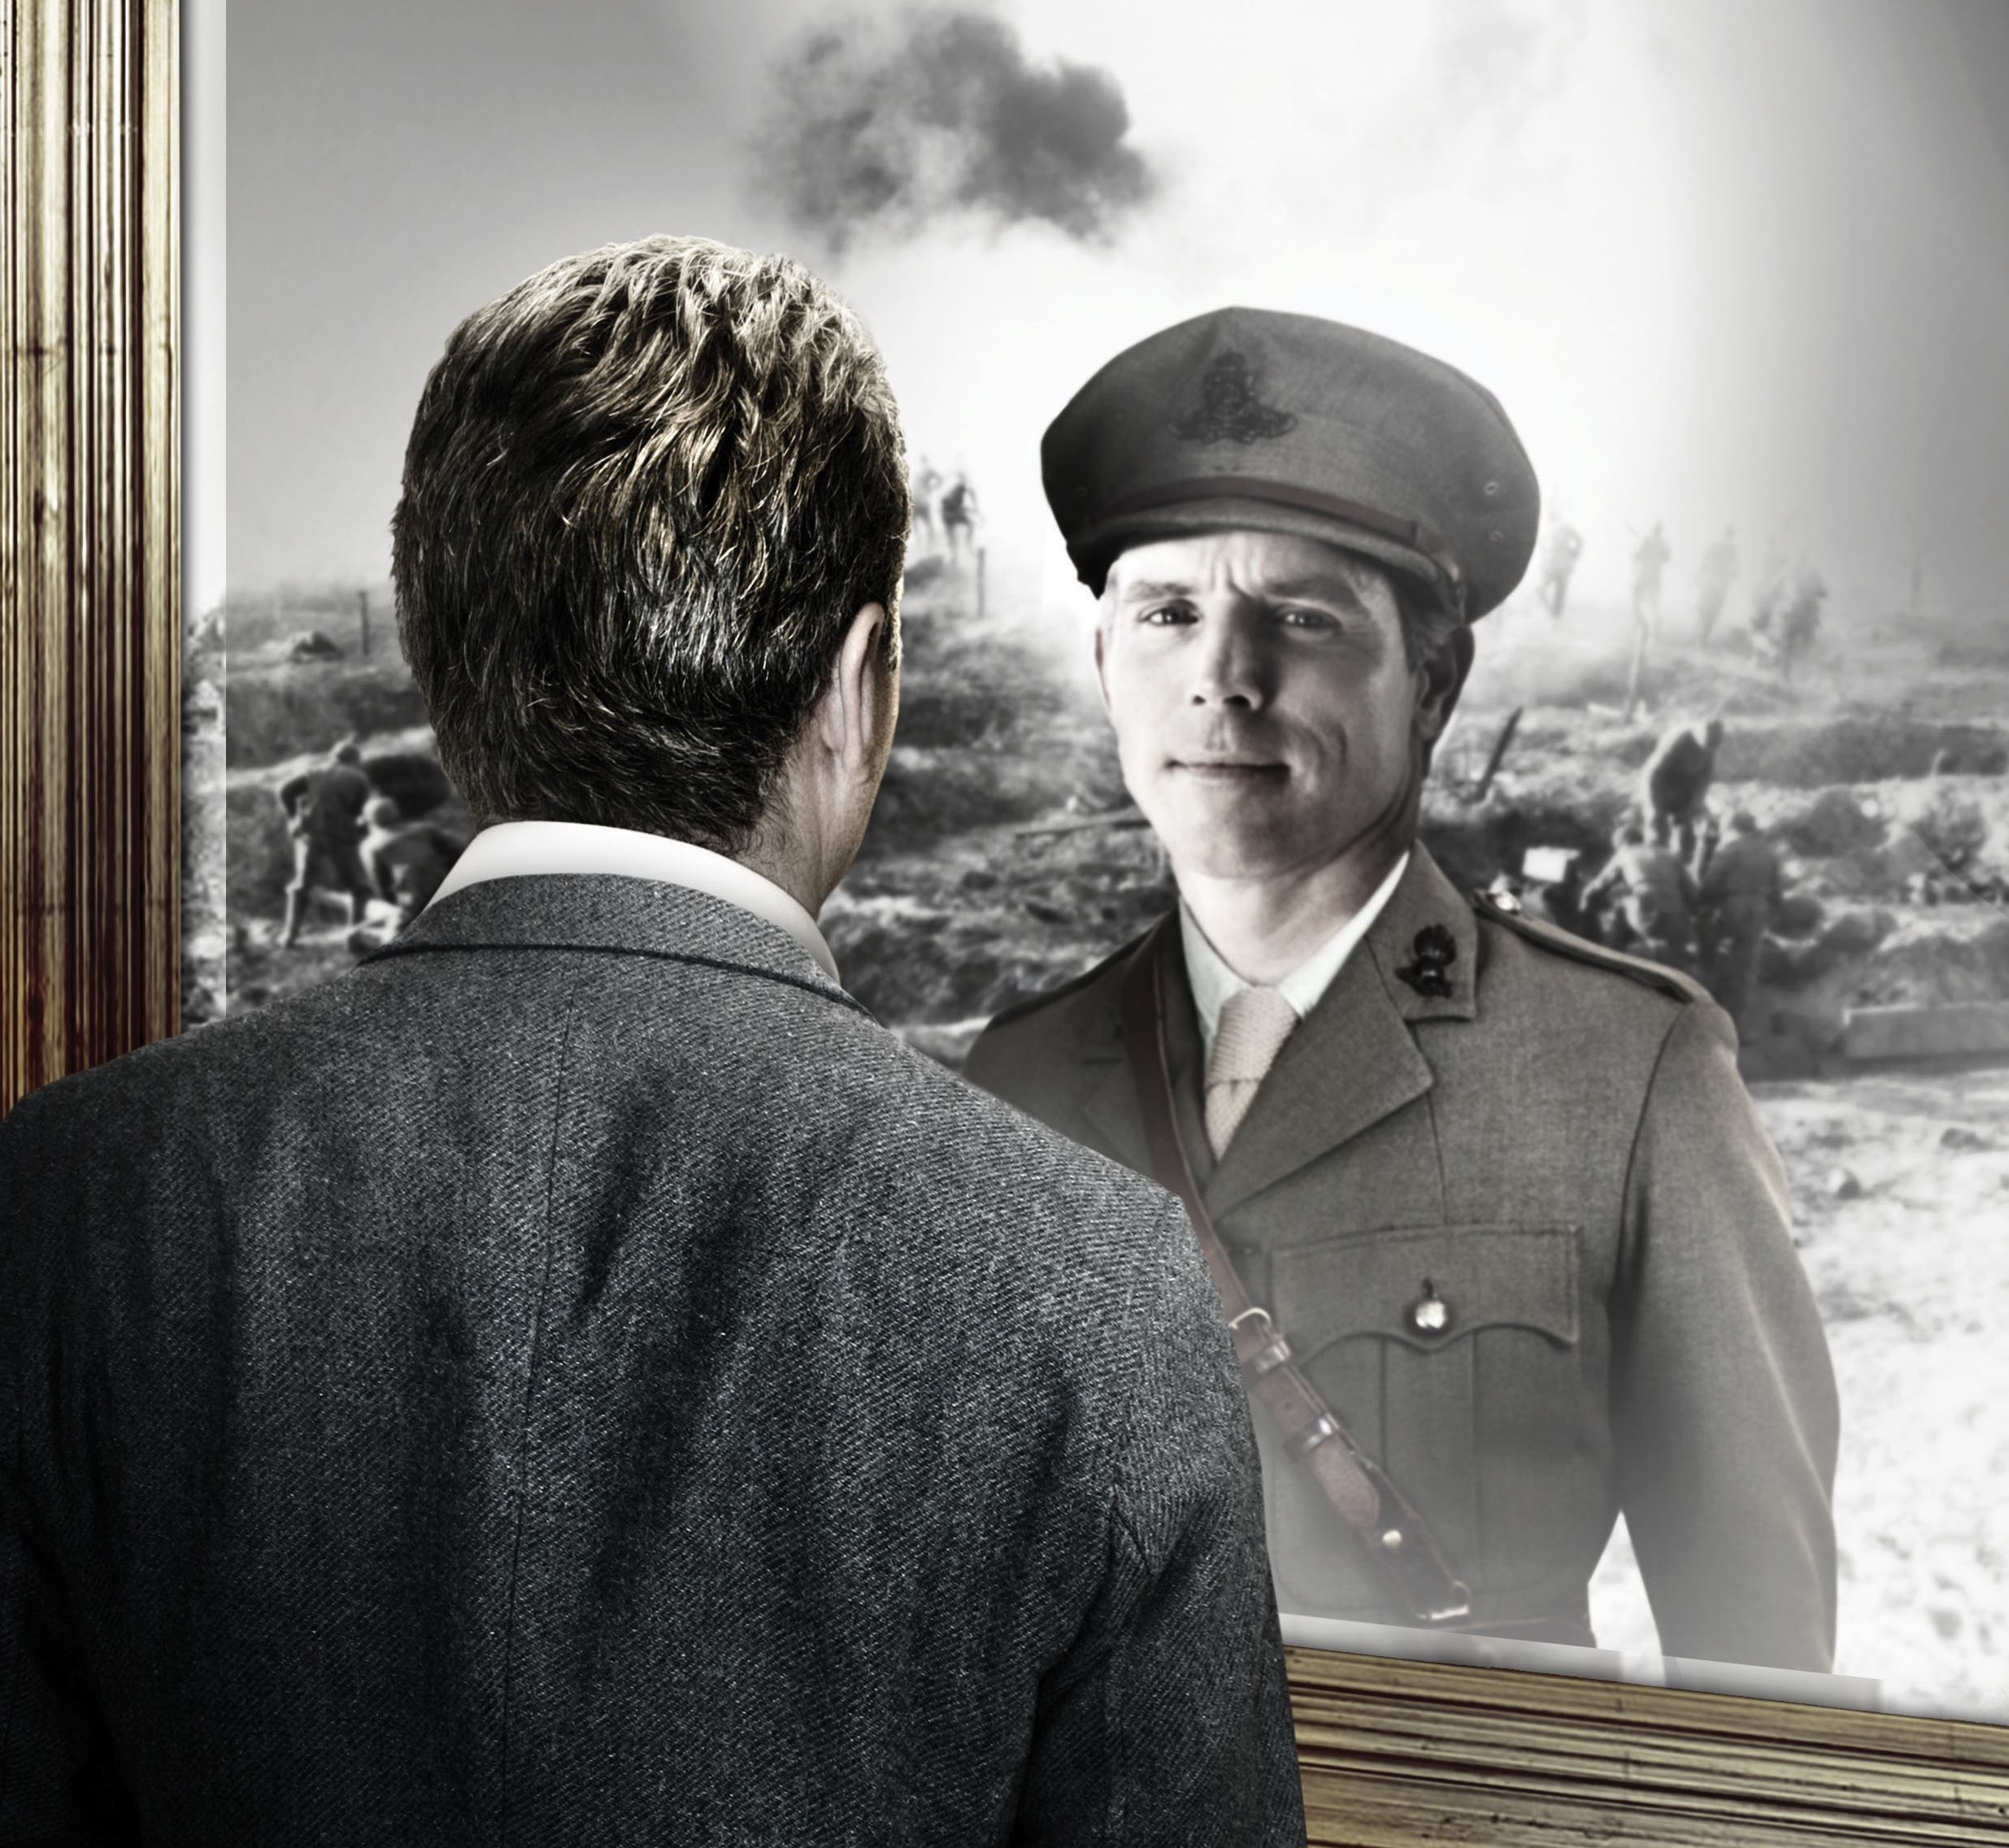 regeneration world war i and siegfried Regeneration ~ pat barker it's july of 1917 so starts the 'regeneration' of siegfried sassoon by rivers along the way we meet several other patients at the facility who rivers is also treating siegfried sassoon, world war i.